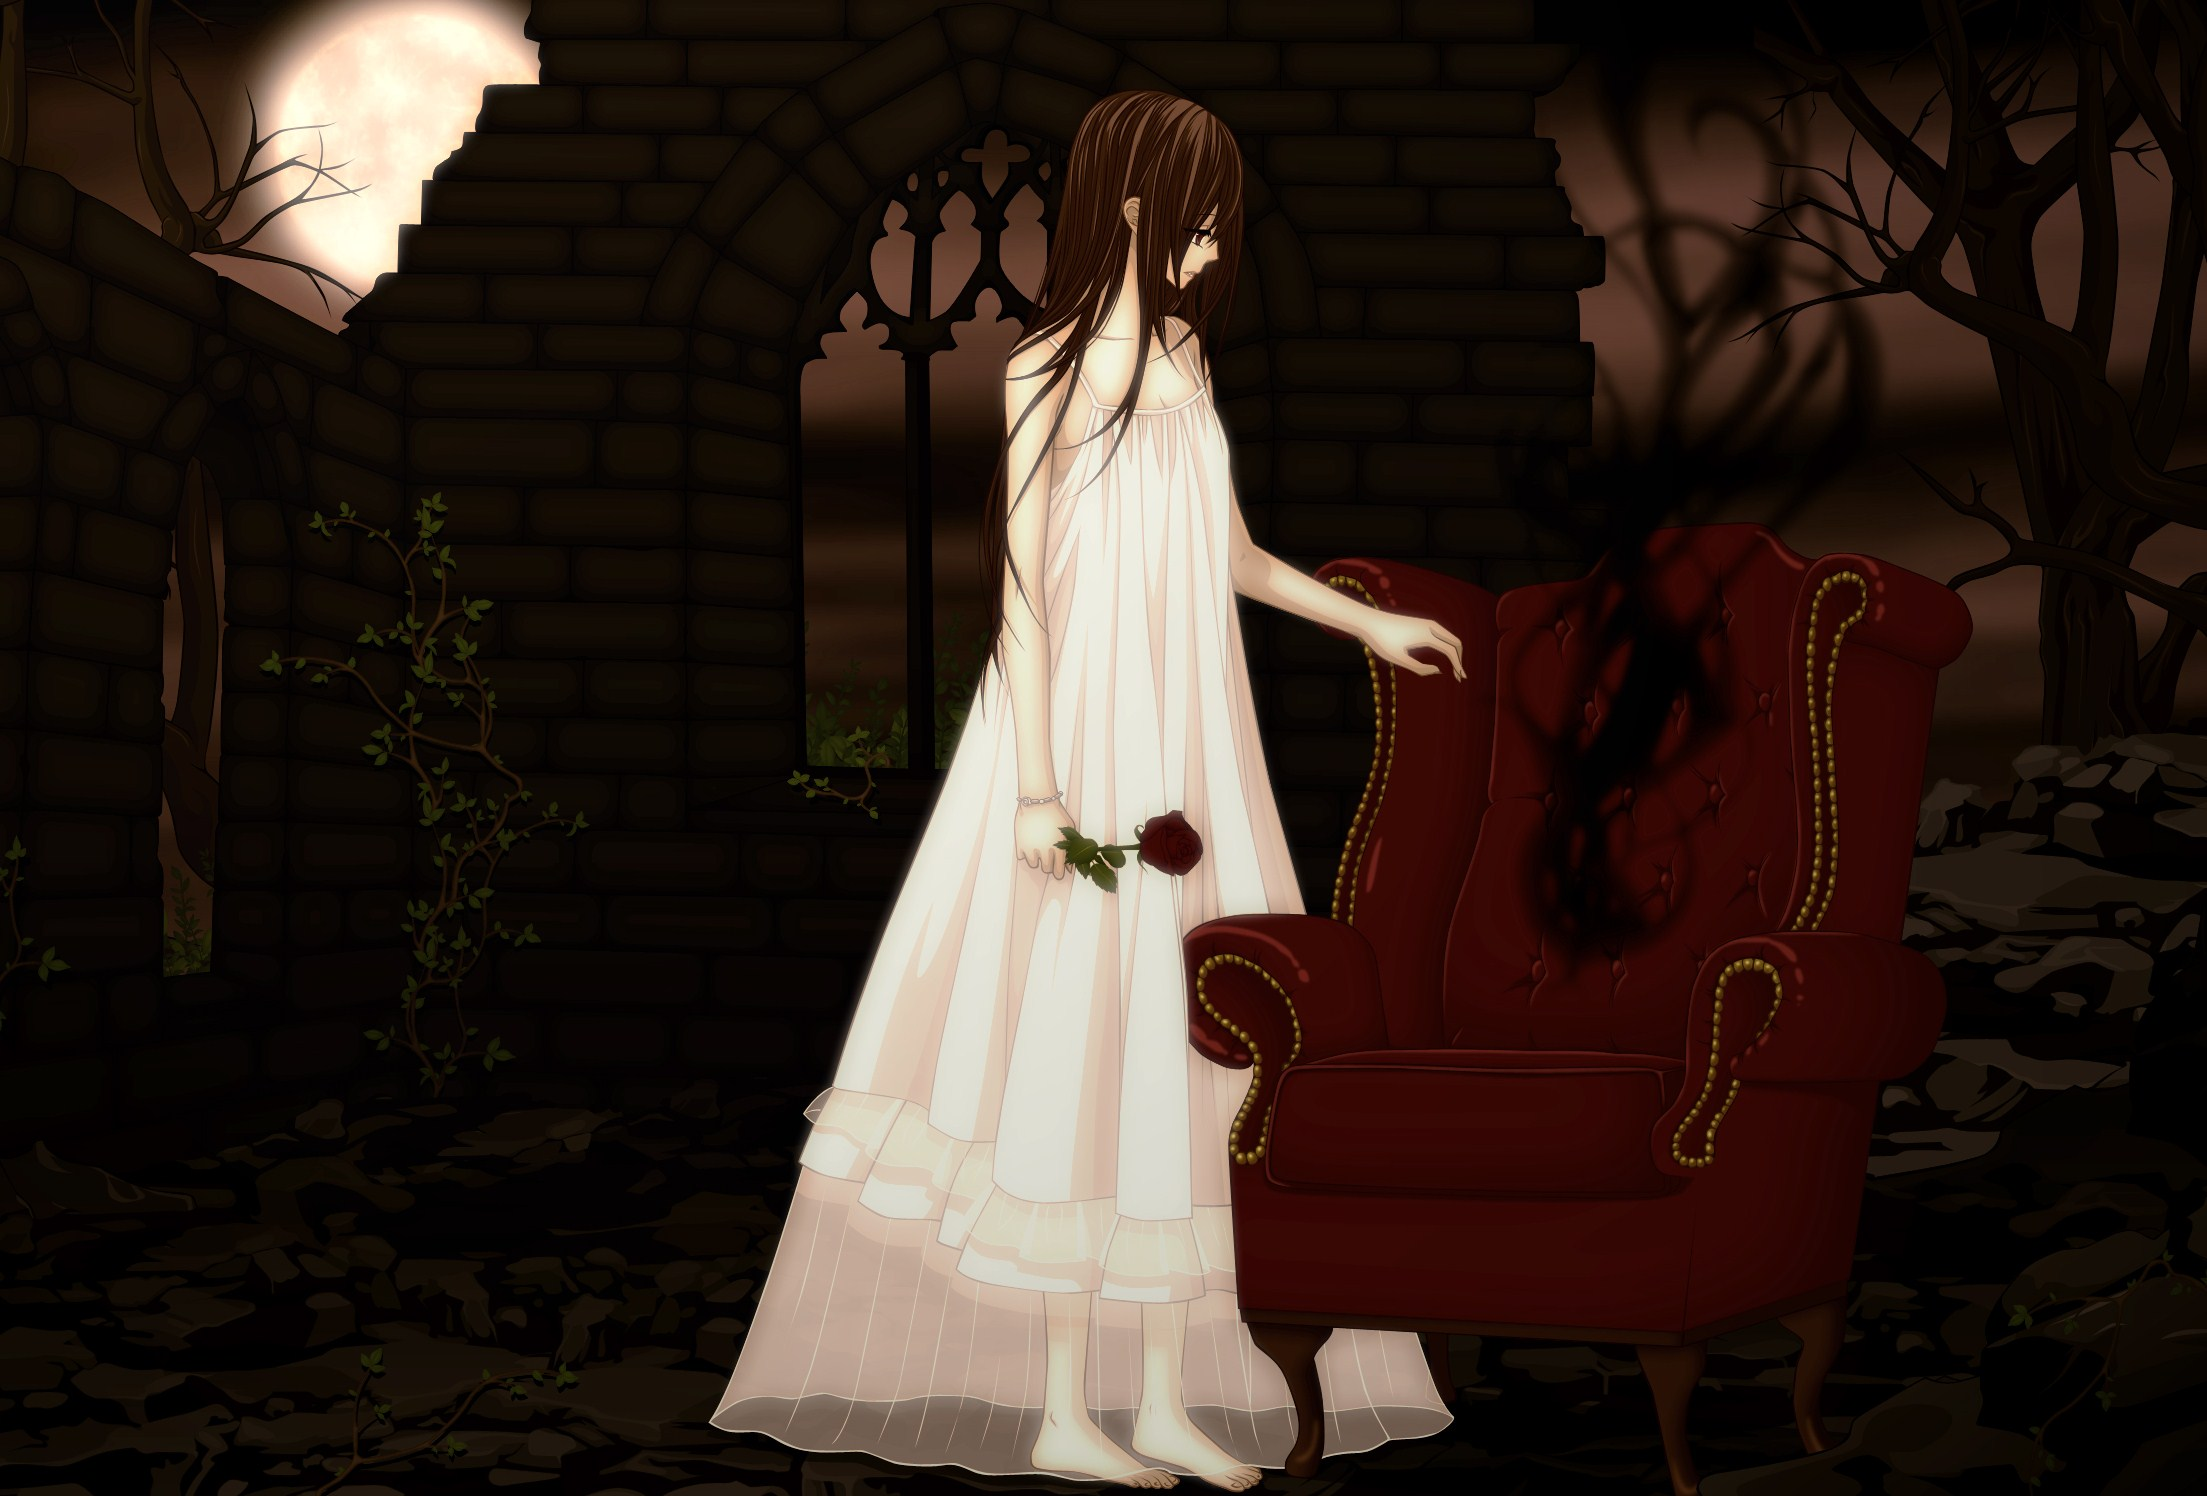 Vampire knight hd wallpaper background image 2207x1496 - Vampire knight anime wallpaper ...